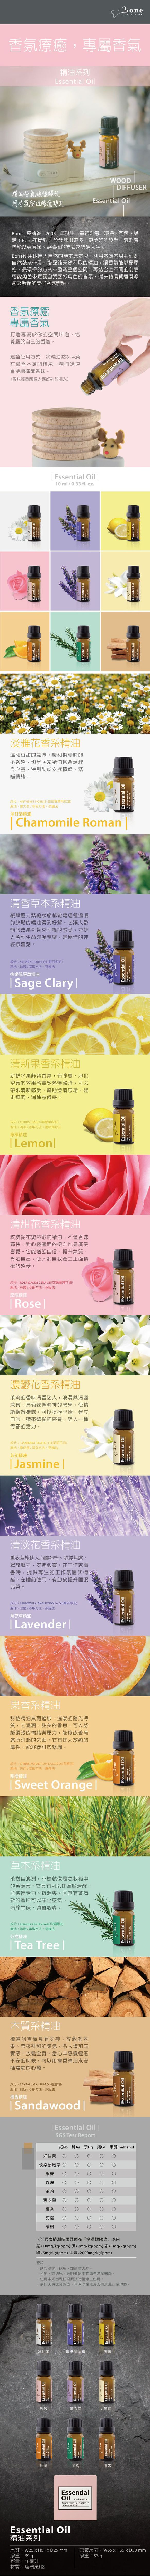 Bone|Essential Oil - Sandalwood 檀香精油 10ml